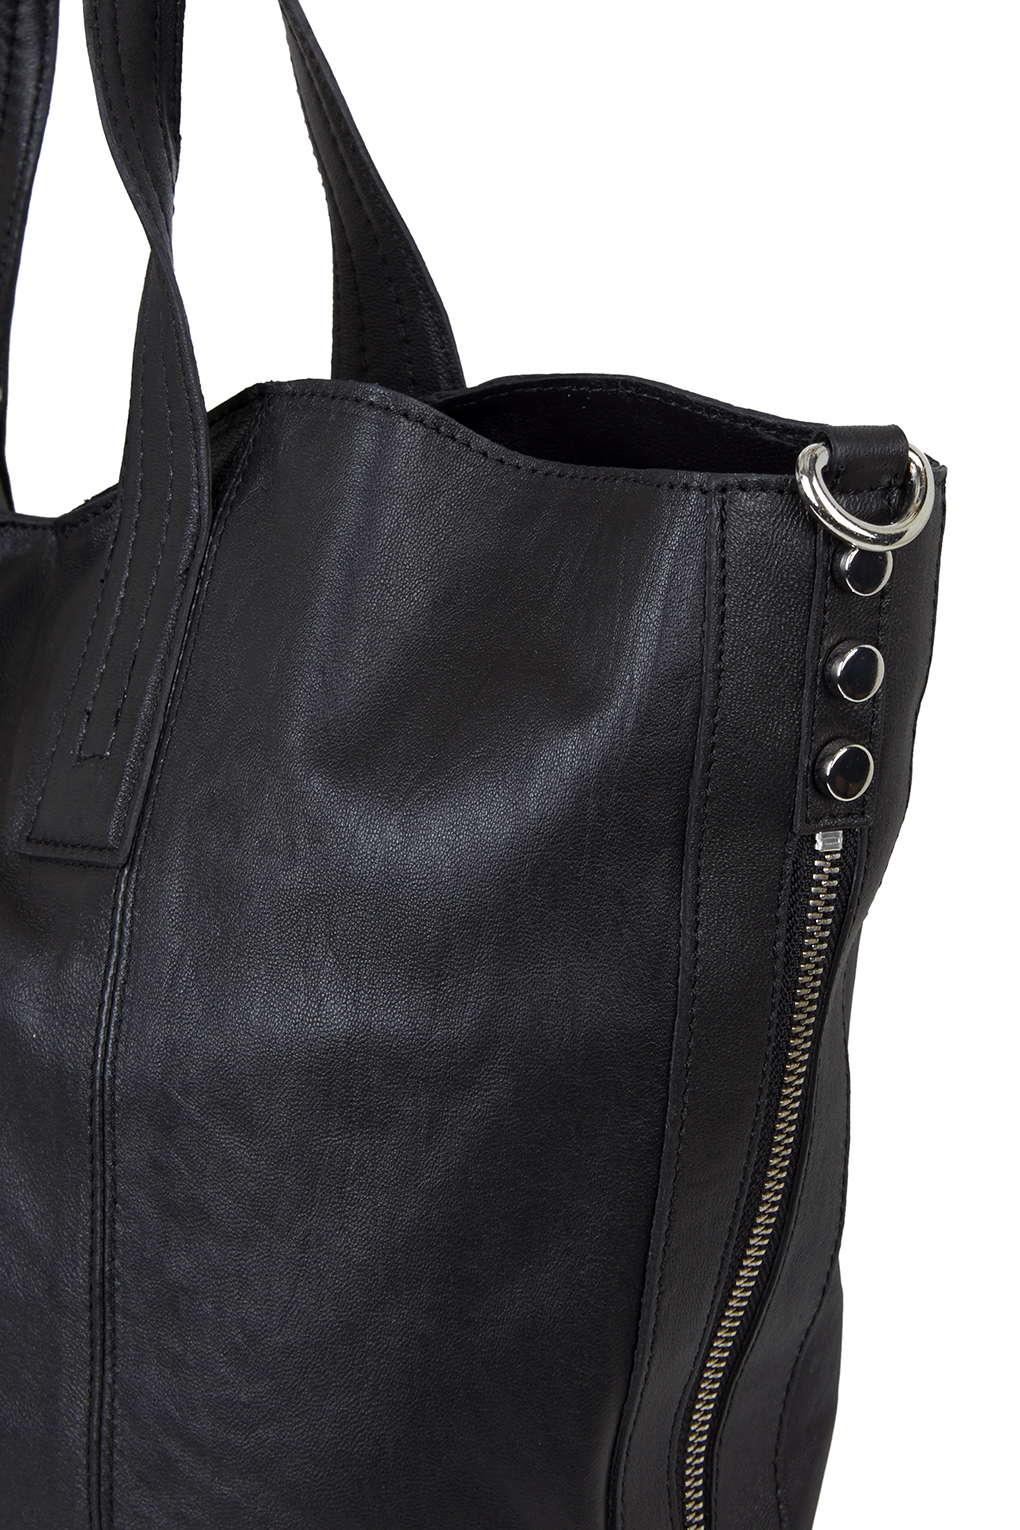 46d476513f95c Lyst - TOPSHOP Casual Leather Tote Bag in Black